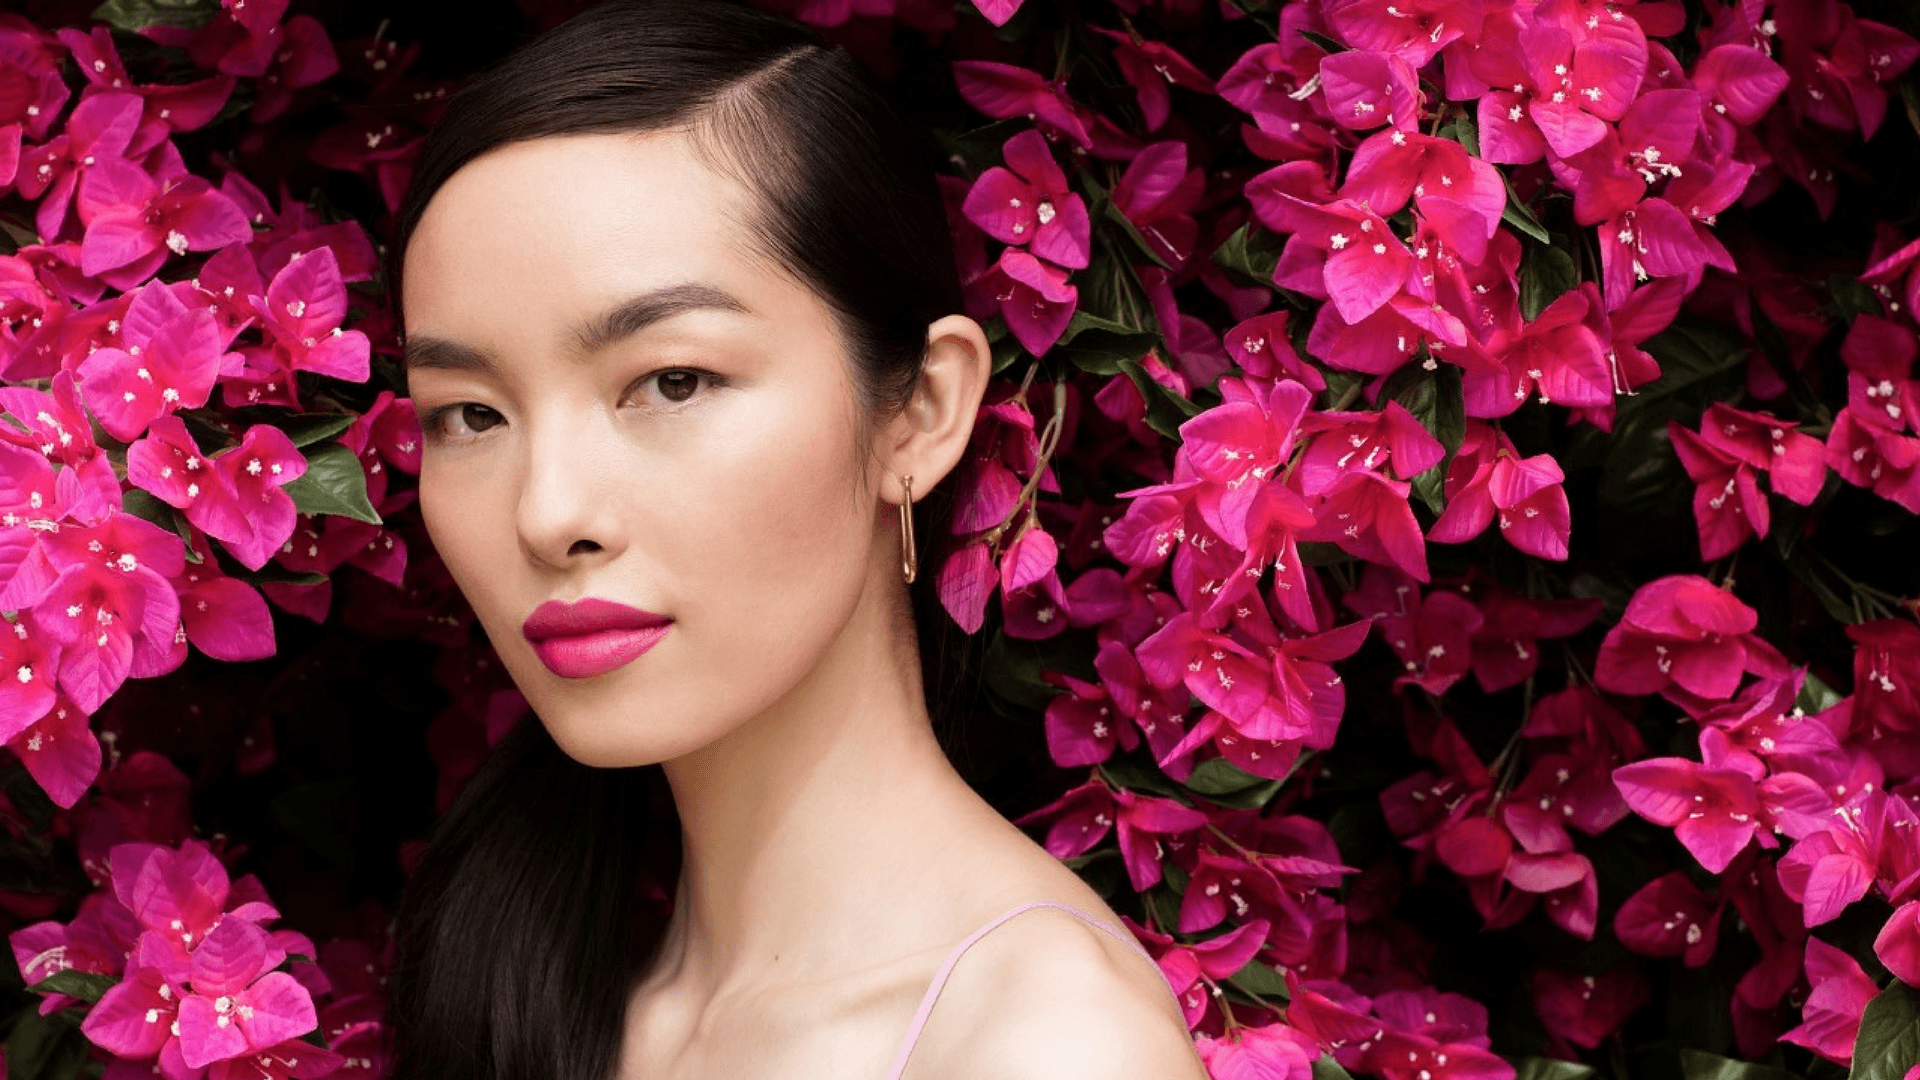 Fei Fei Sun Is The New Spokesmodel For Estée Lauder